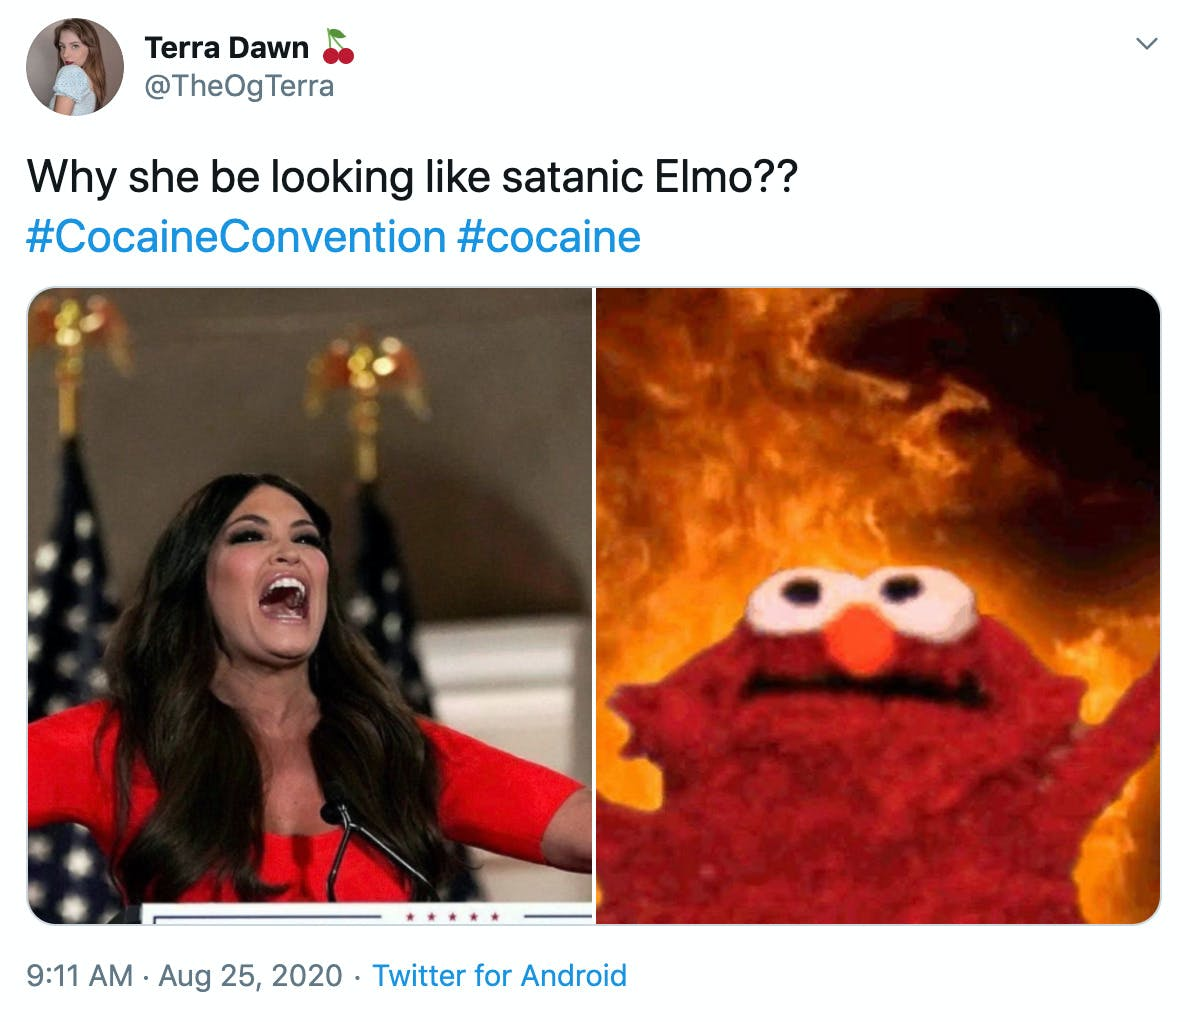 """Why she be looking like satanic Elmo?? #CocaineConvention #cocaine"" Image of Guilfoyle next to the Elmo against the backdrop of flames meme"